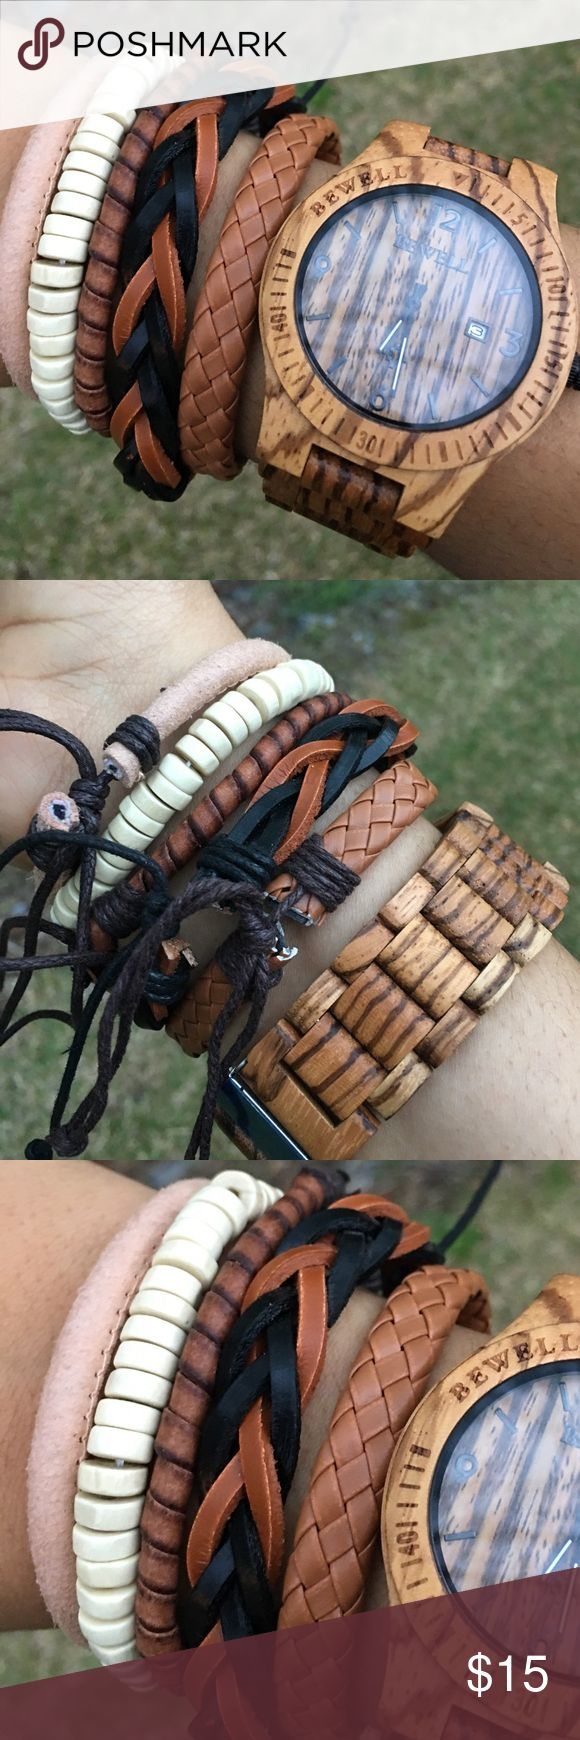 🆕5  Adjustable Bracelets 4 Leather Adjustable bracelets meant to be worn together looks great with or without a watch. One bracelet is Stretch the other 4 adjustable. JustMen Accessories Jewelry